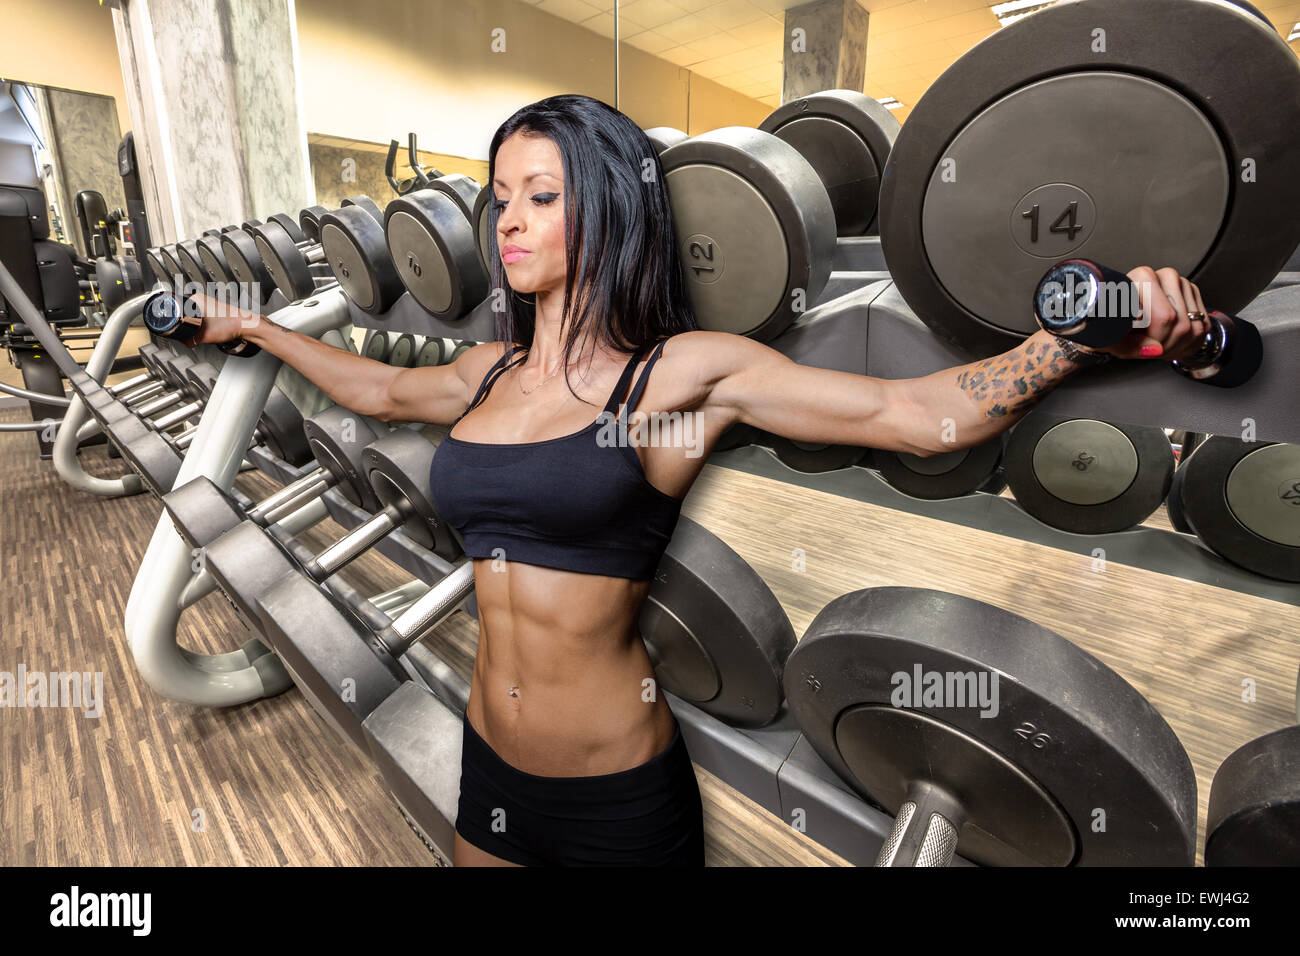 En Bodybuilding gym Photo Stock